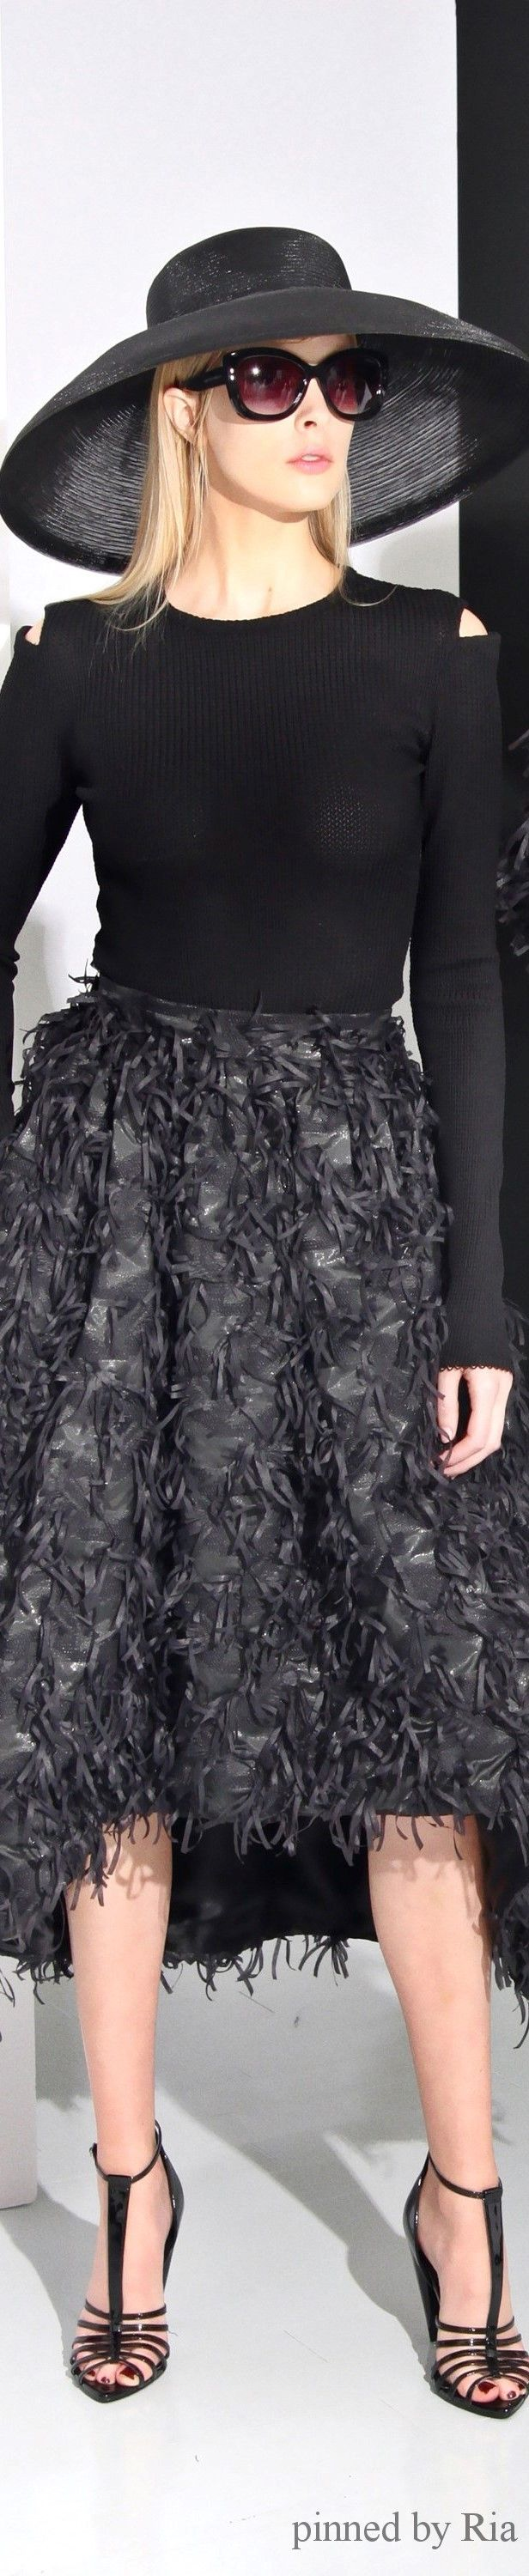 Christian Siriano Pre Fall 2016 l  women fashion outfit clothing style apparel @roressclothes closet ideas